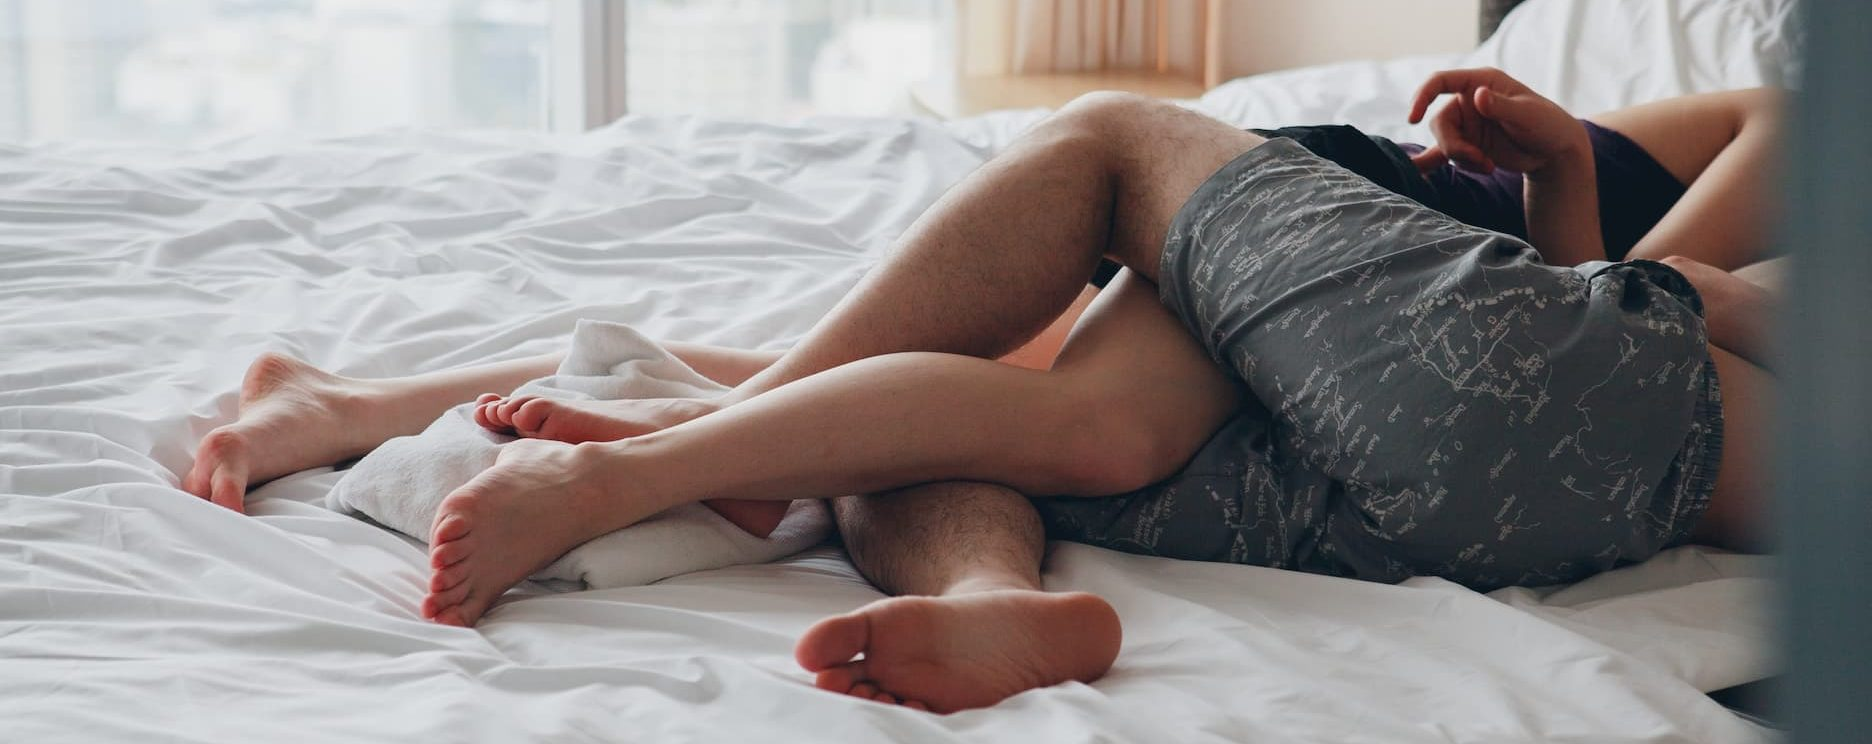 Sex In A Relationship: What To Do If The Thrill Is Gone?